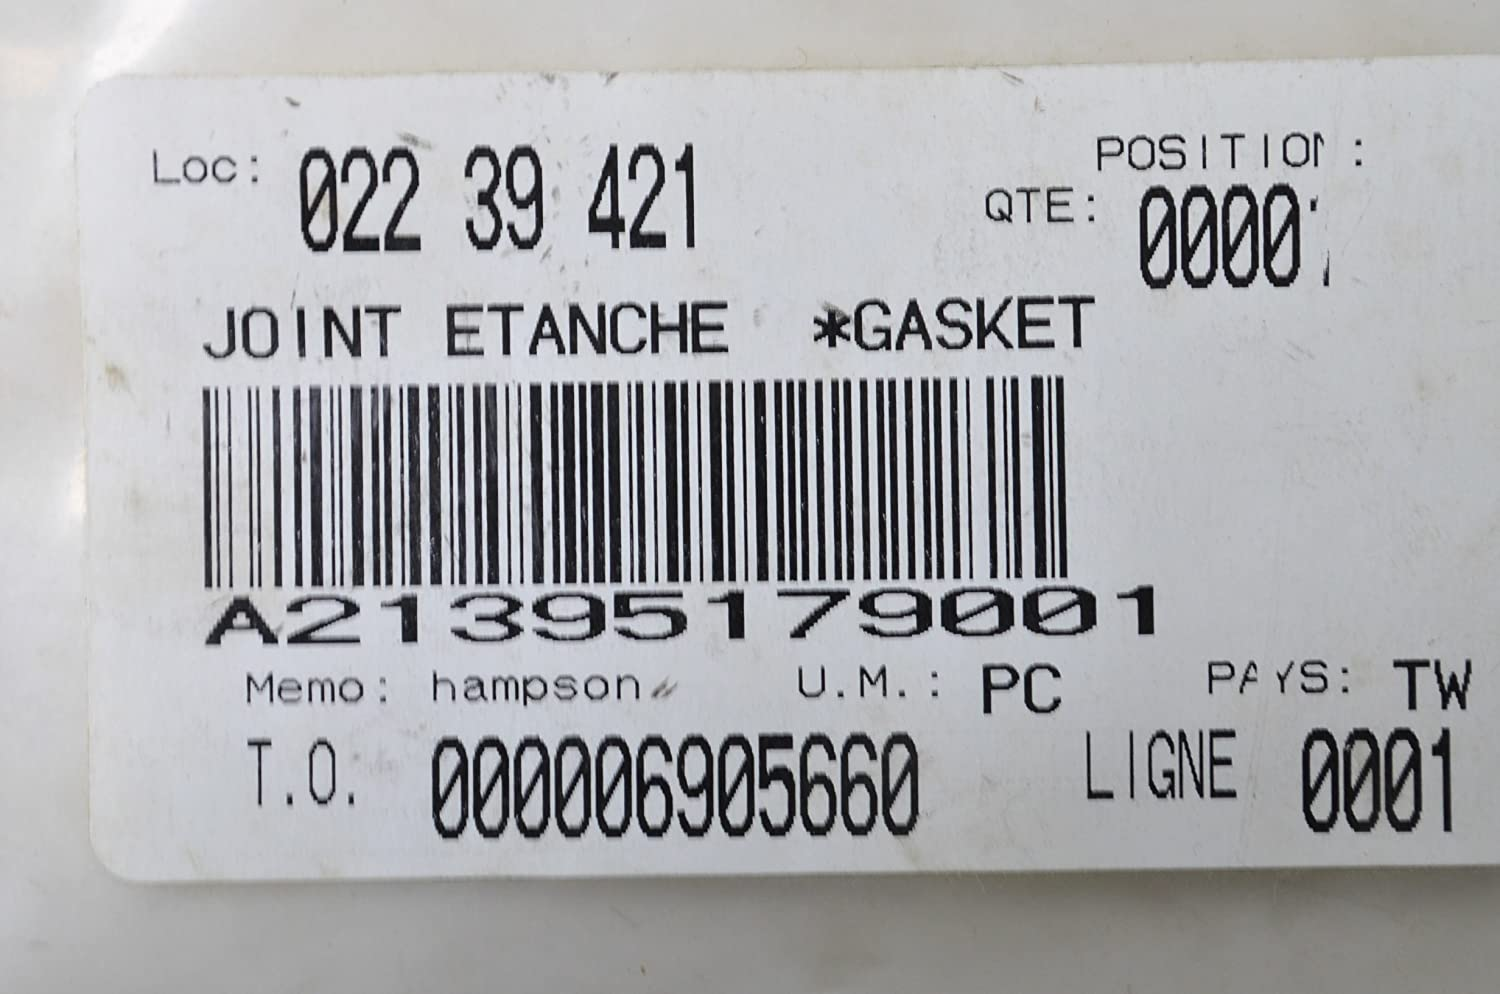 Can-Am 2005-2007 Rally 175 Joint Etanche Gasket A21395179001 New Oem